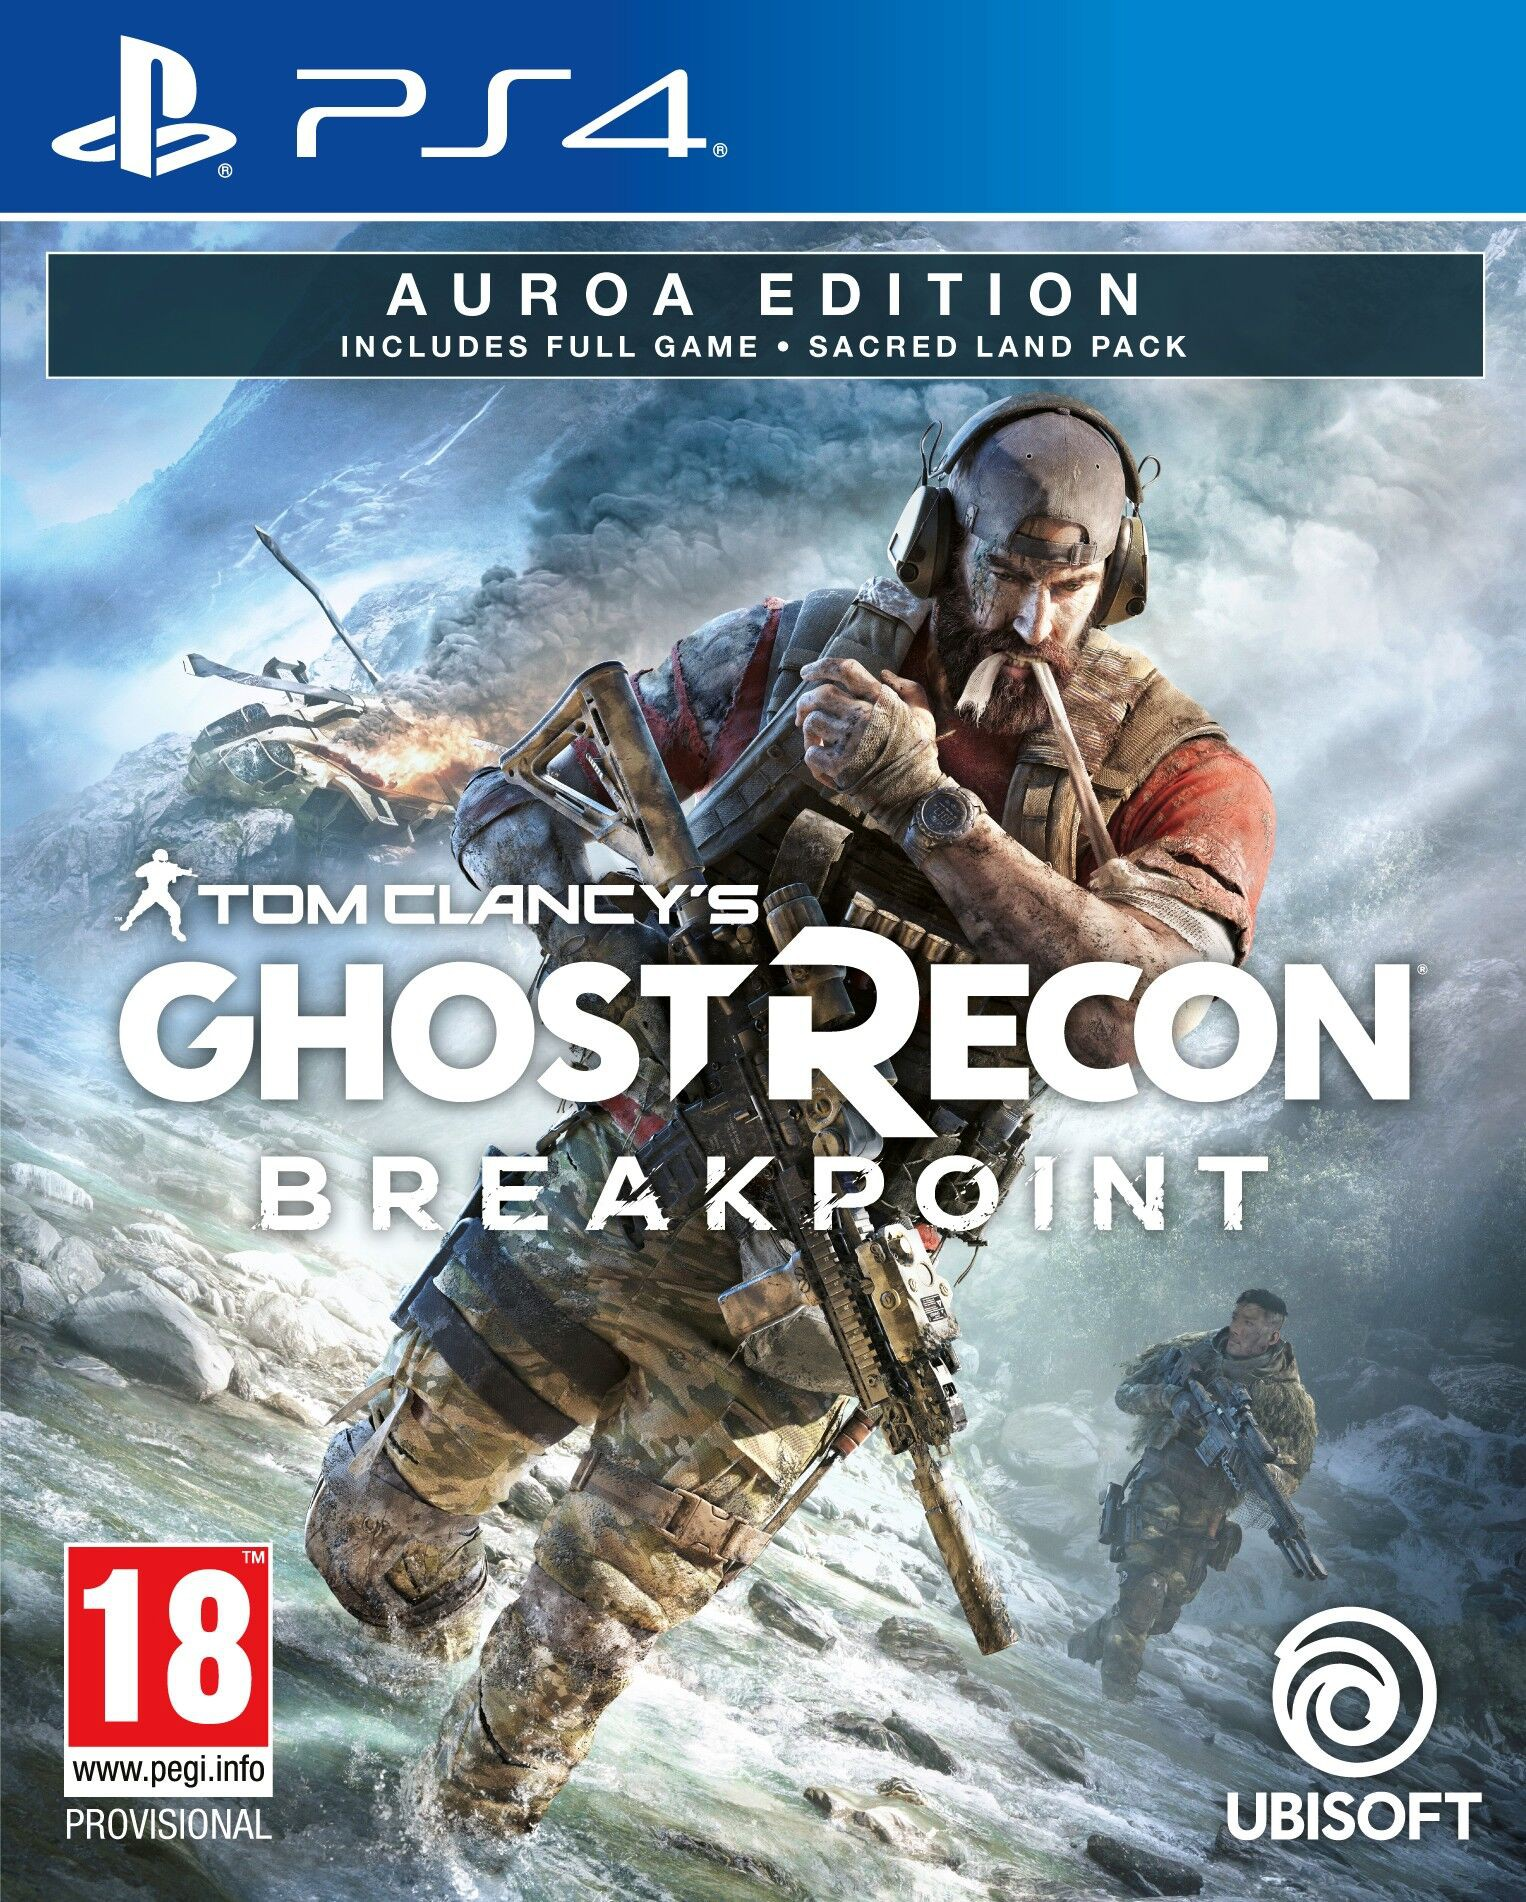 Tom Clancys Ghost Recon Breakpoint: Auroa Edition